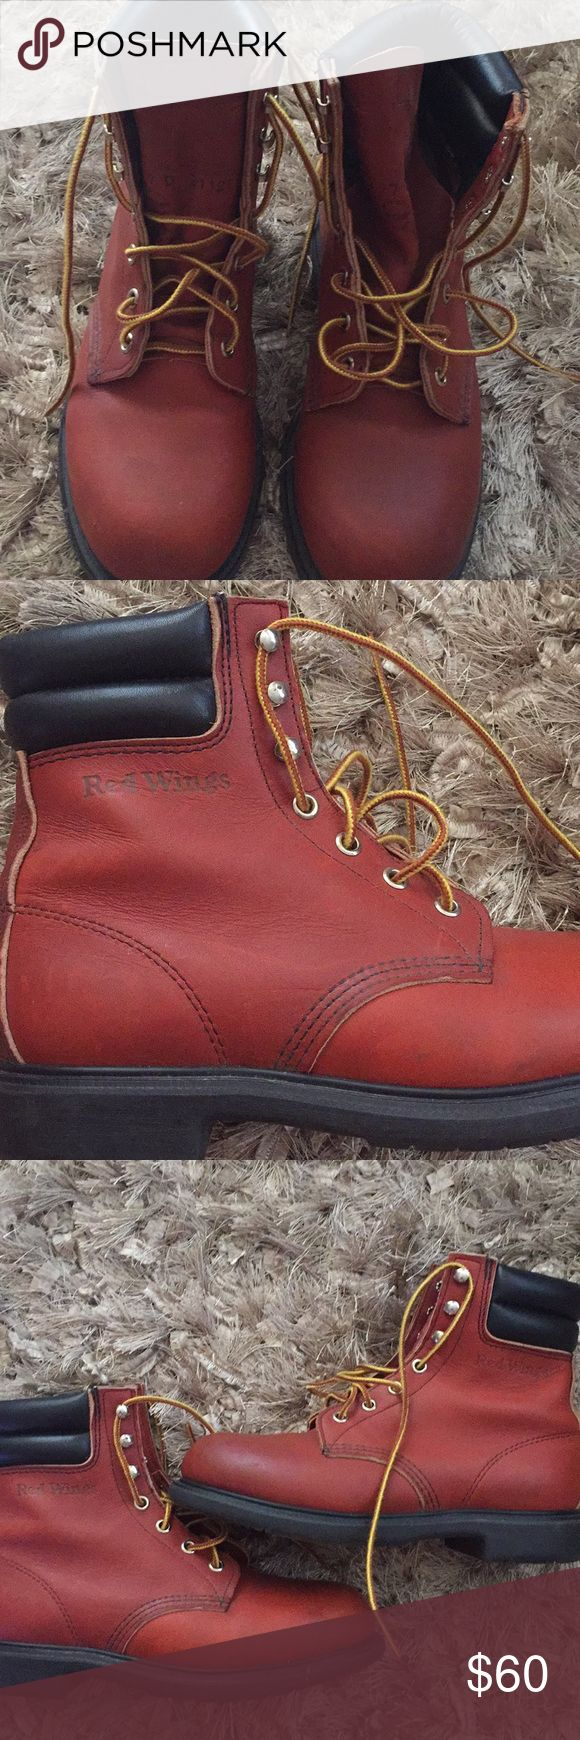 Red wing boots Red wing Shoes oil resisting worn only once Red Wing Shoes Shoes Boots